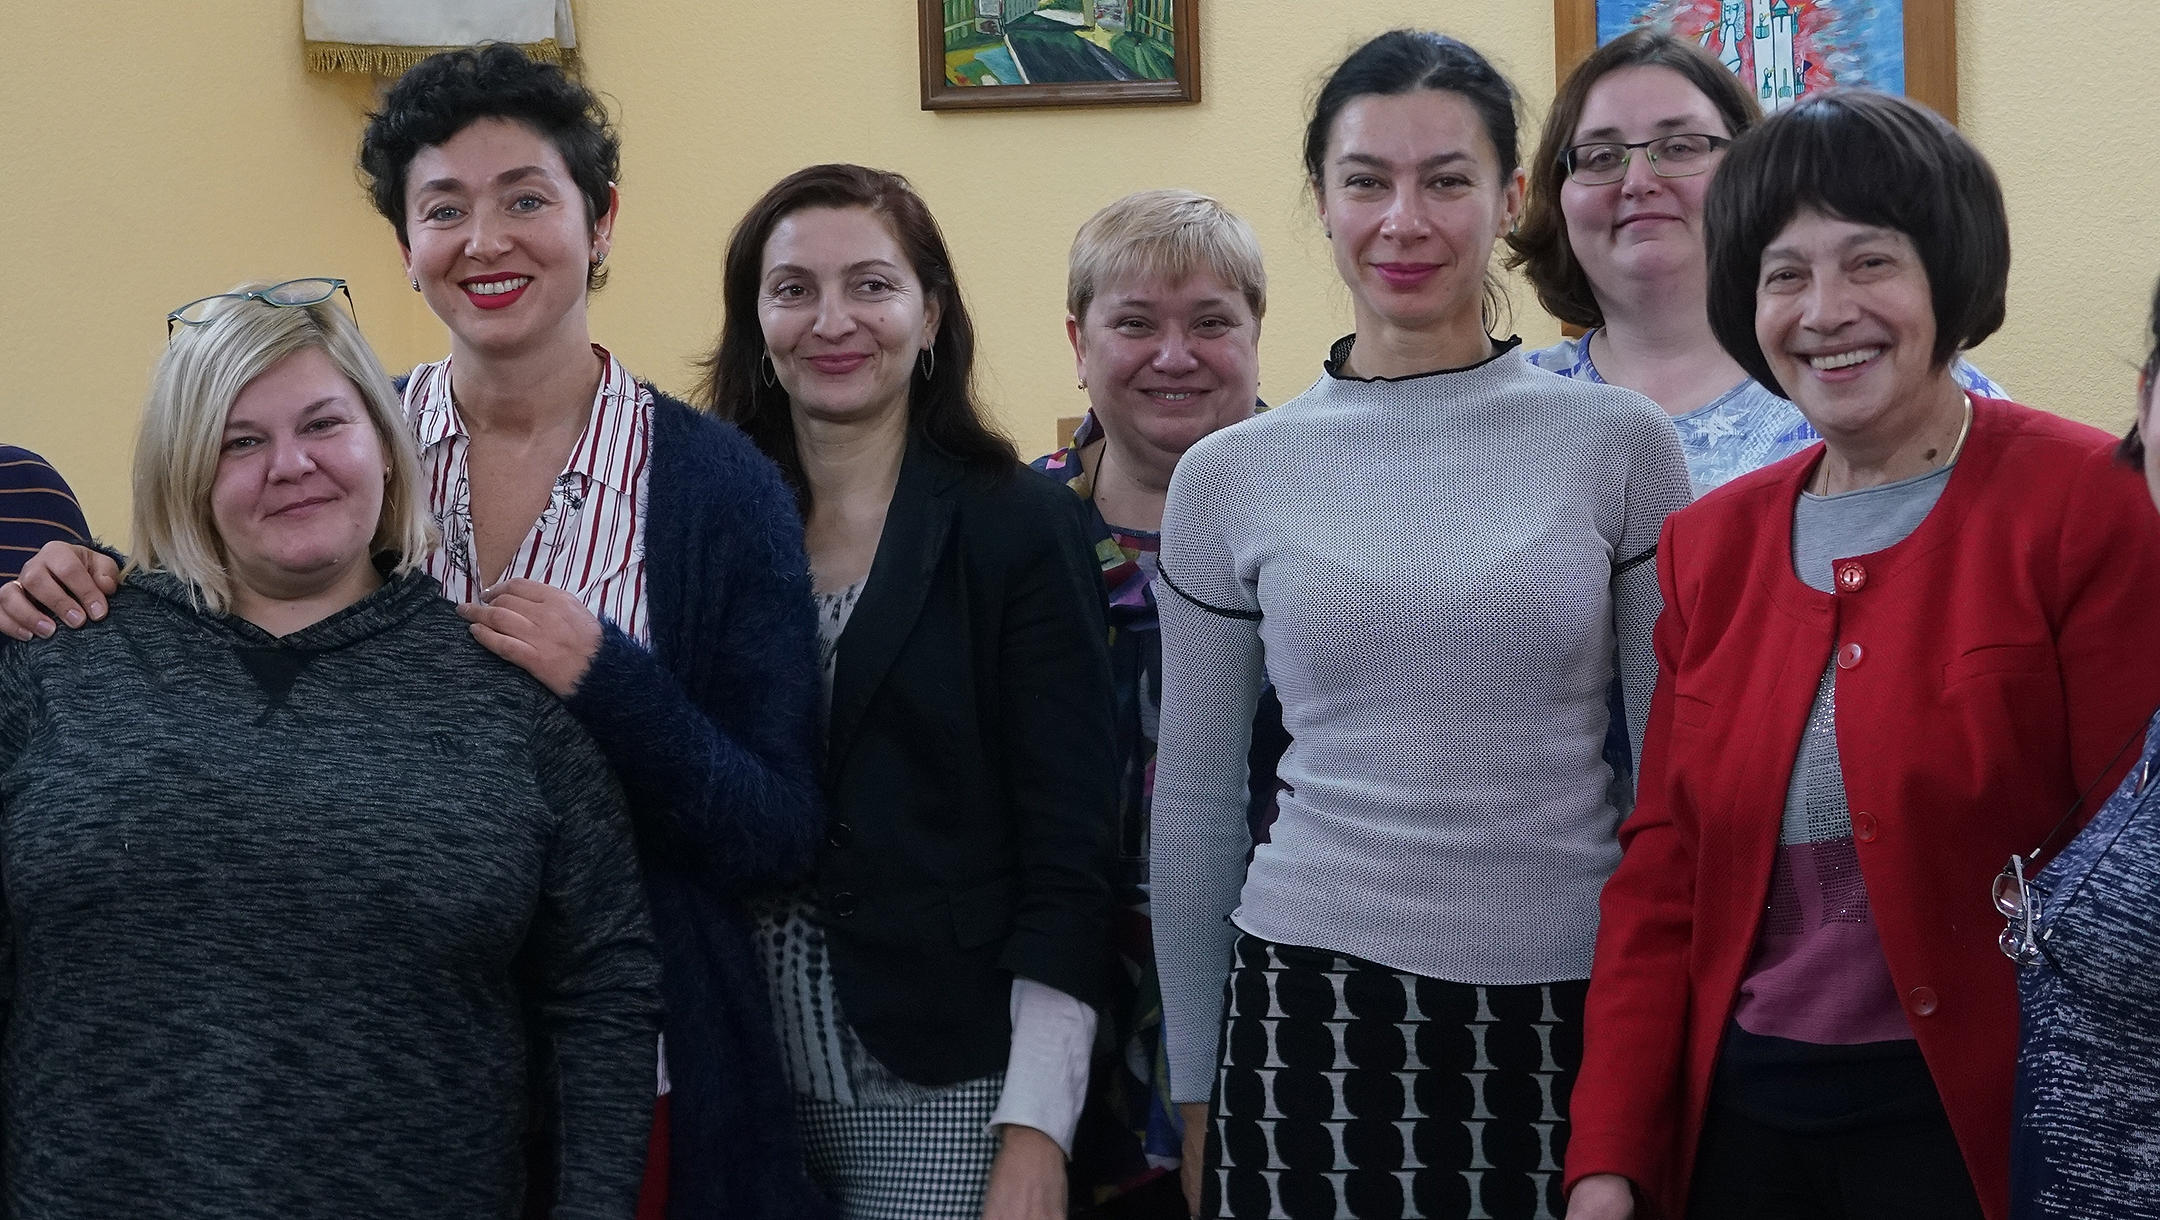 Kira Verkhovskaya, 5th from right, with other Ukrainian Jewish women at the Migdal Jewish Community Center in Odessa on Nov. 3, 2019. (Cnaan Liphshiz)